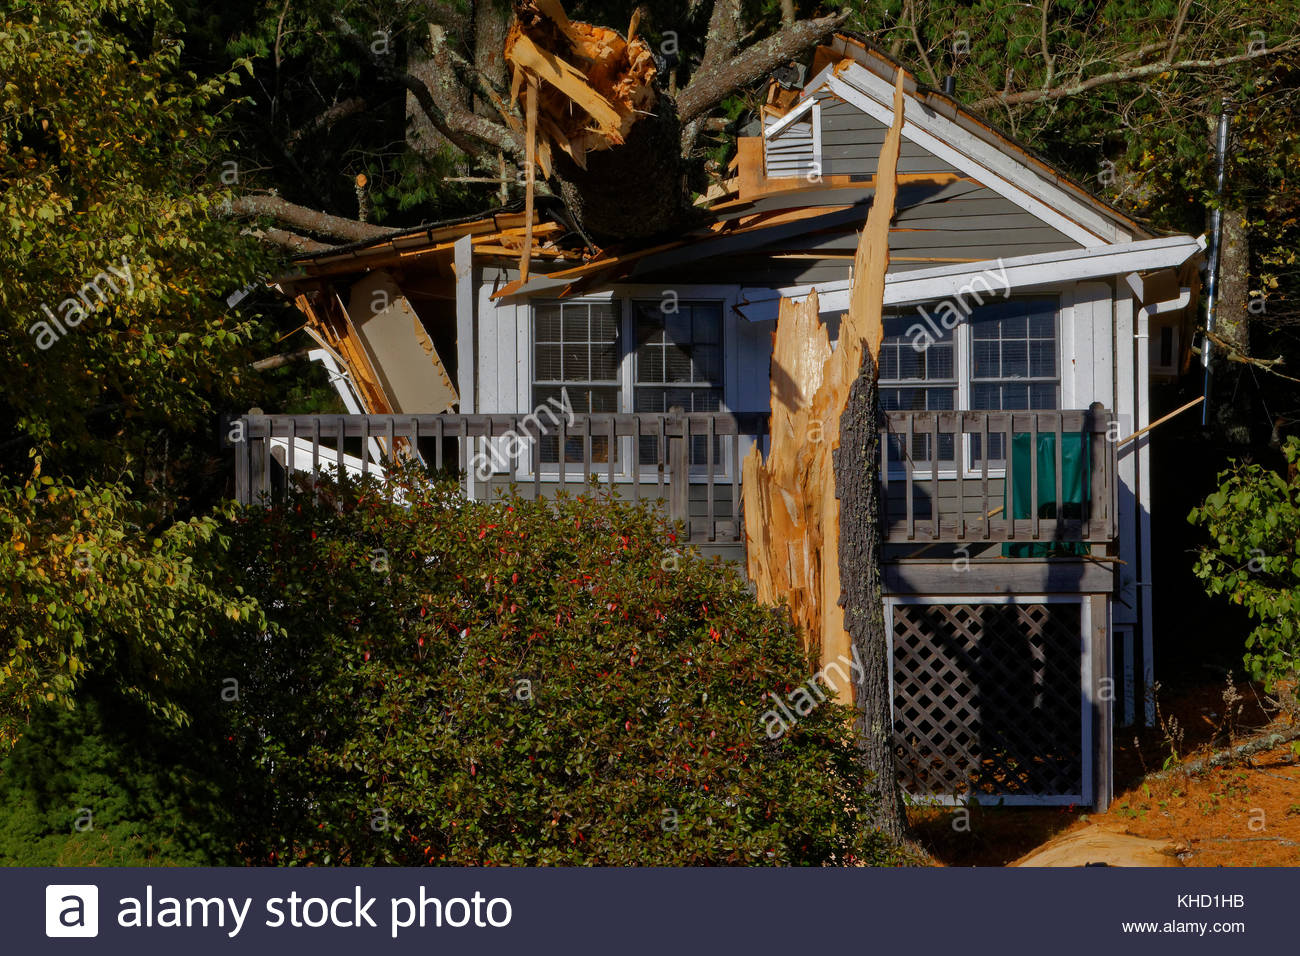 Sensational Small Cottage Damaged By A Falling Tree Lincolnville Maine Interior Design Ideas Jittwwsoteloinfo